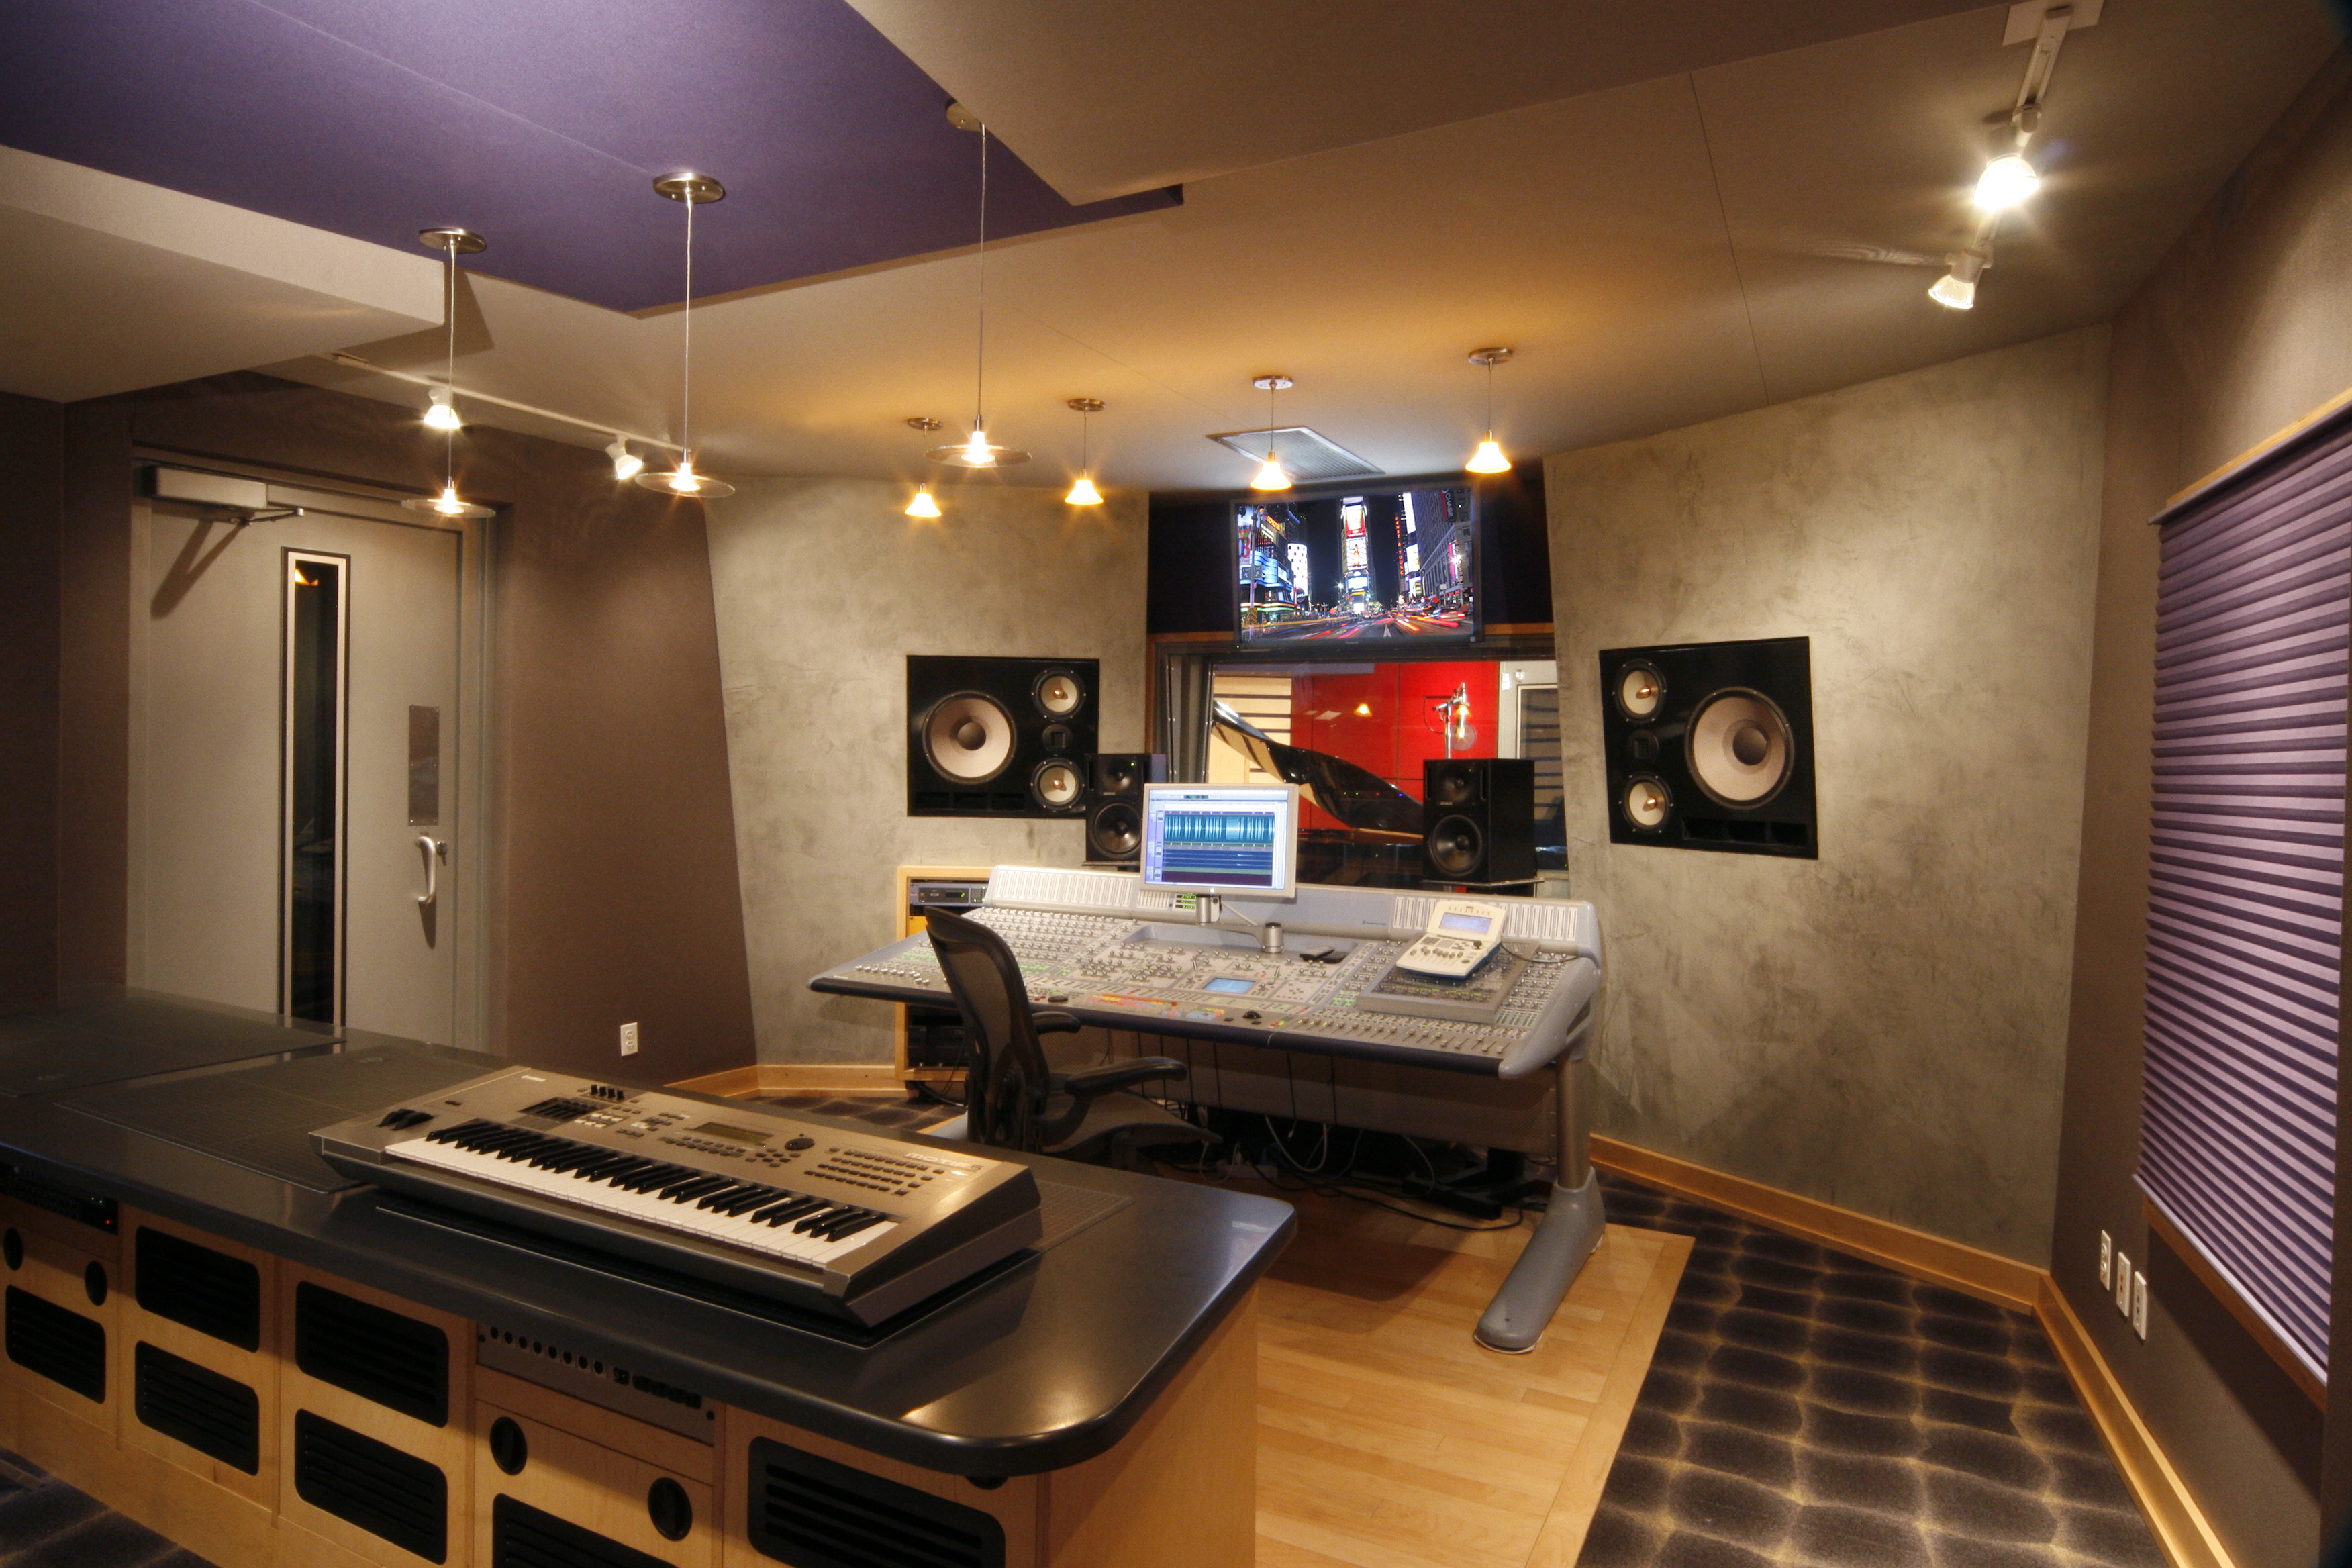 Acoustic Room Design Software